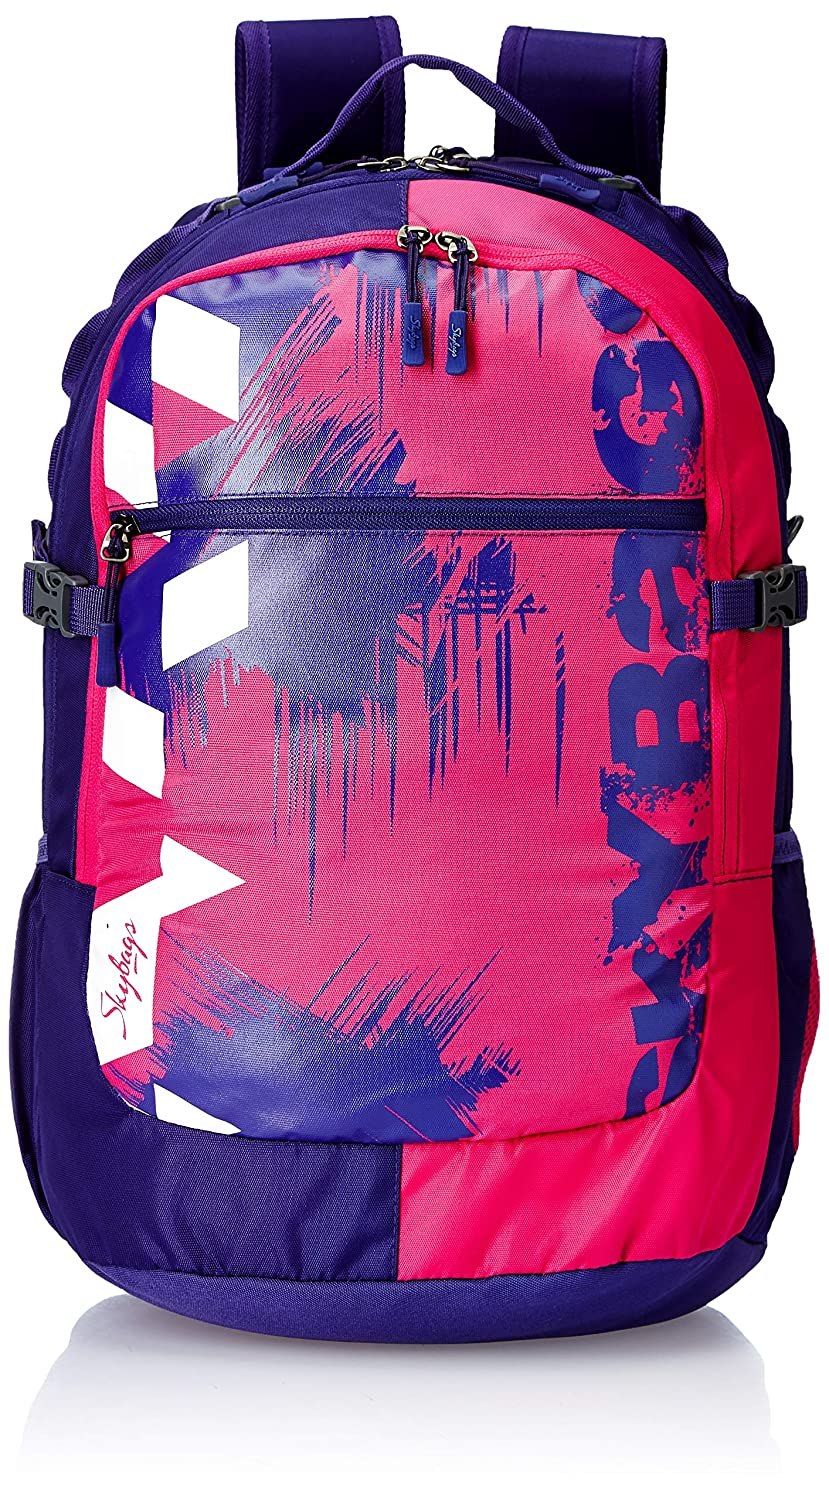 Skybags Crew 06 33 Ltrs Purple Laptop Backpack (Crew 06)